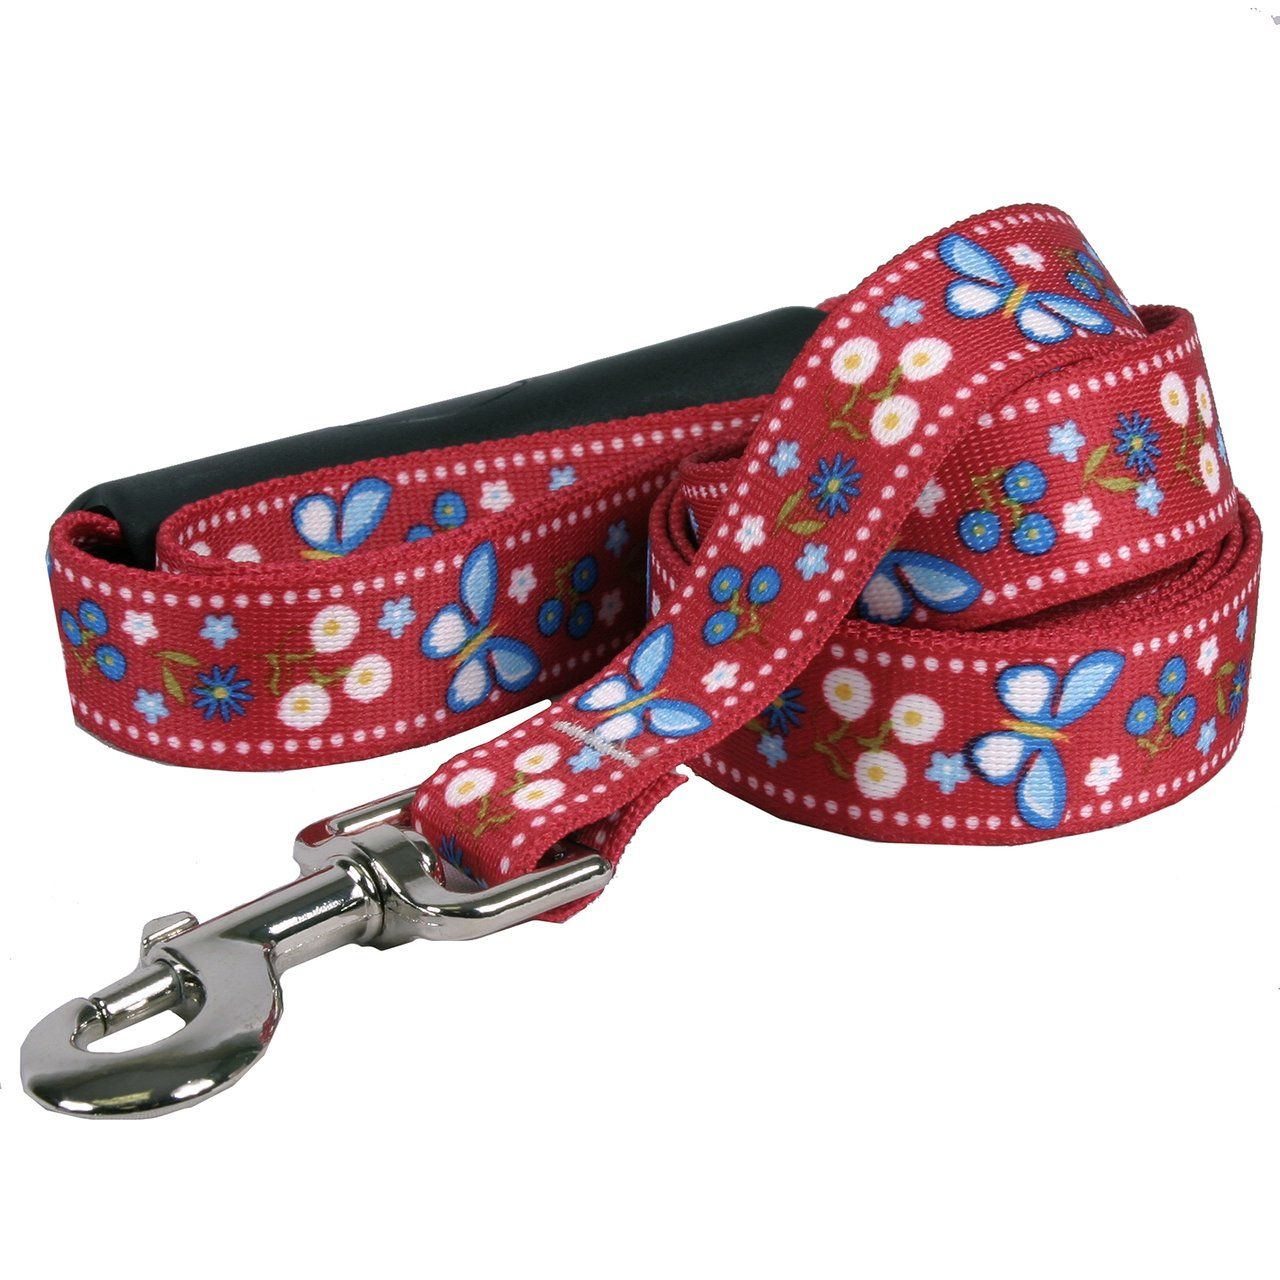 Yellow Dog Design Festive Butterfly Red Ez-Grip Dog Leash with Comfort Handle 1'' Wide and 5' (60'') Long, Large by Yellow Dog Design